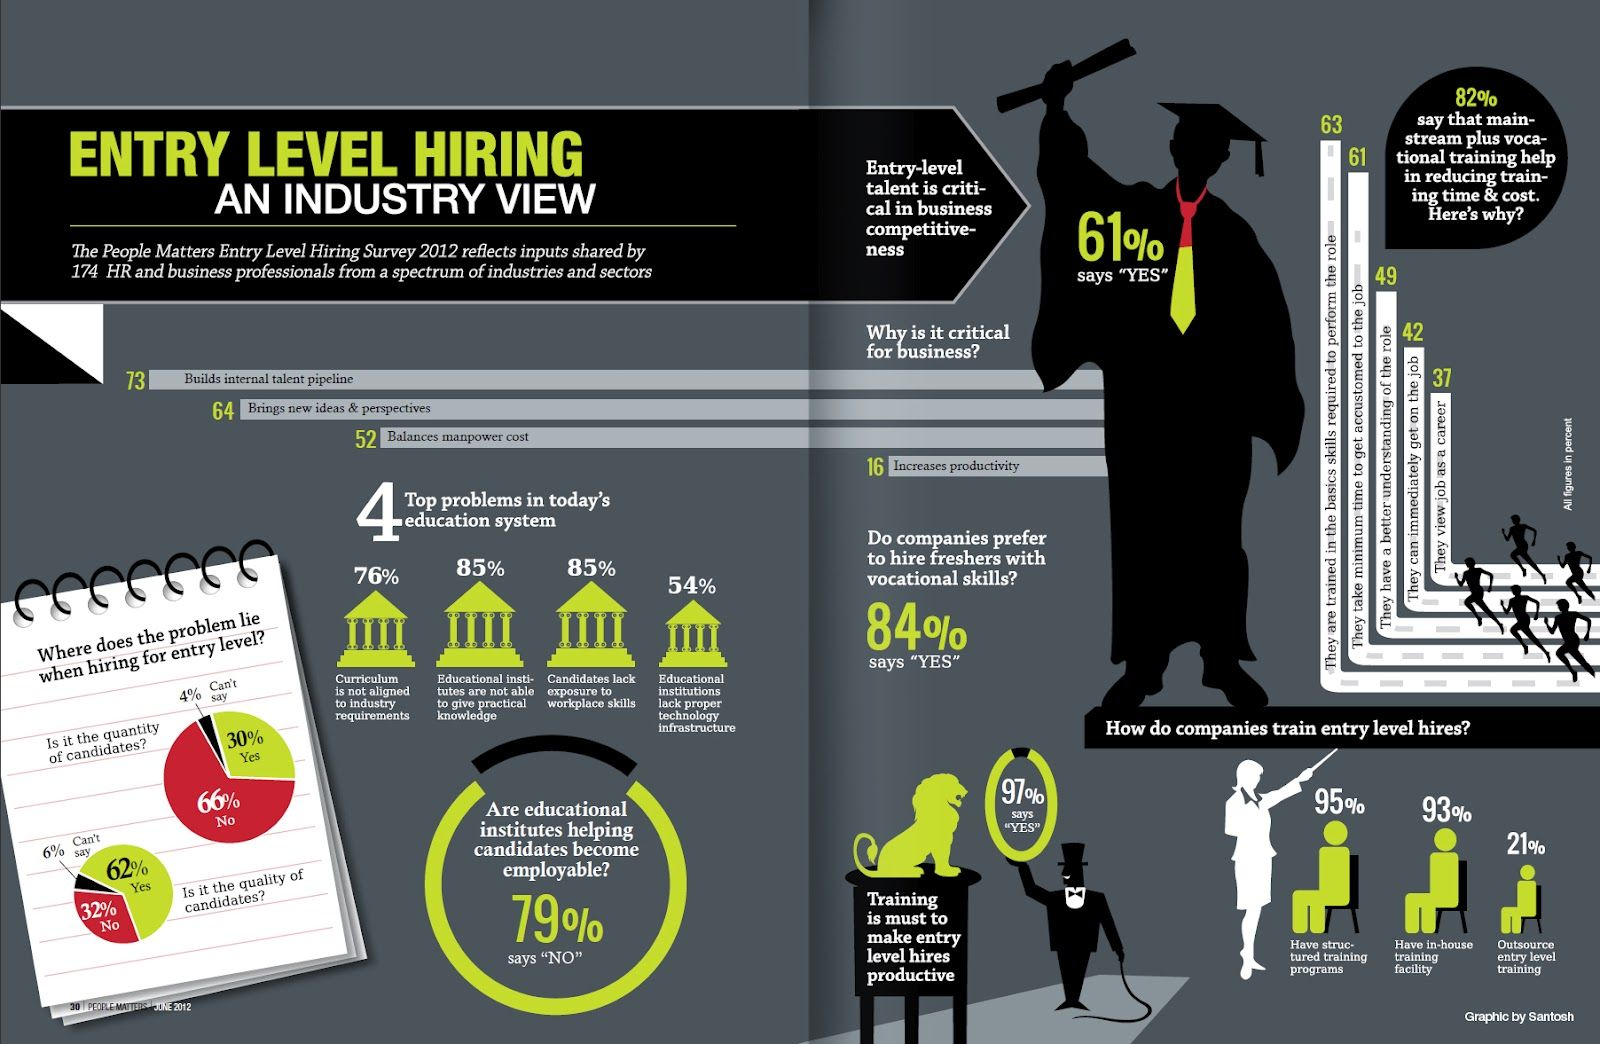 The People Matters Entry Level Hiring Survey 2012 reflects